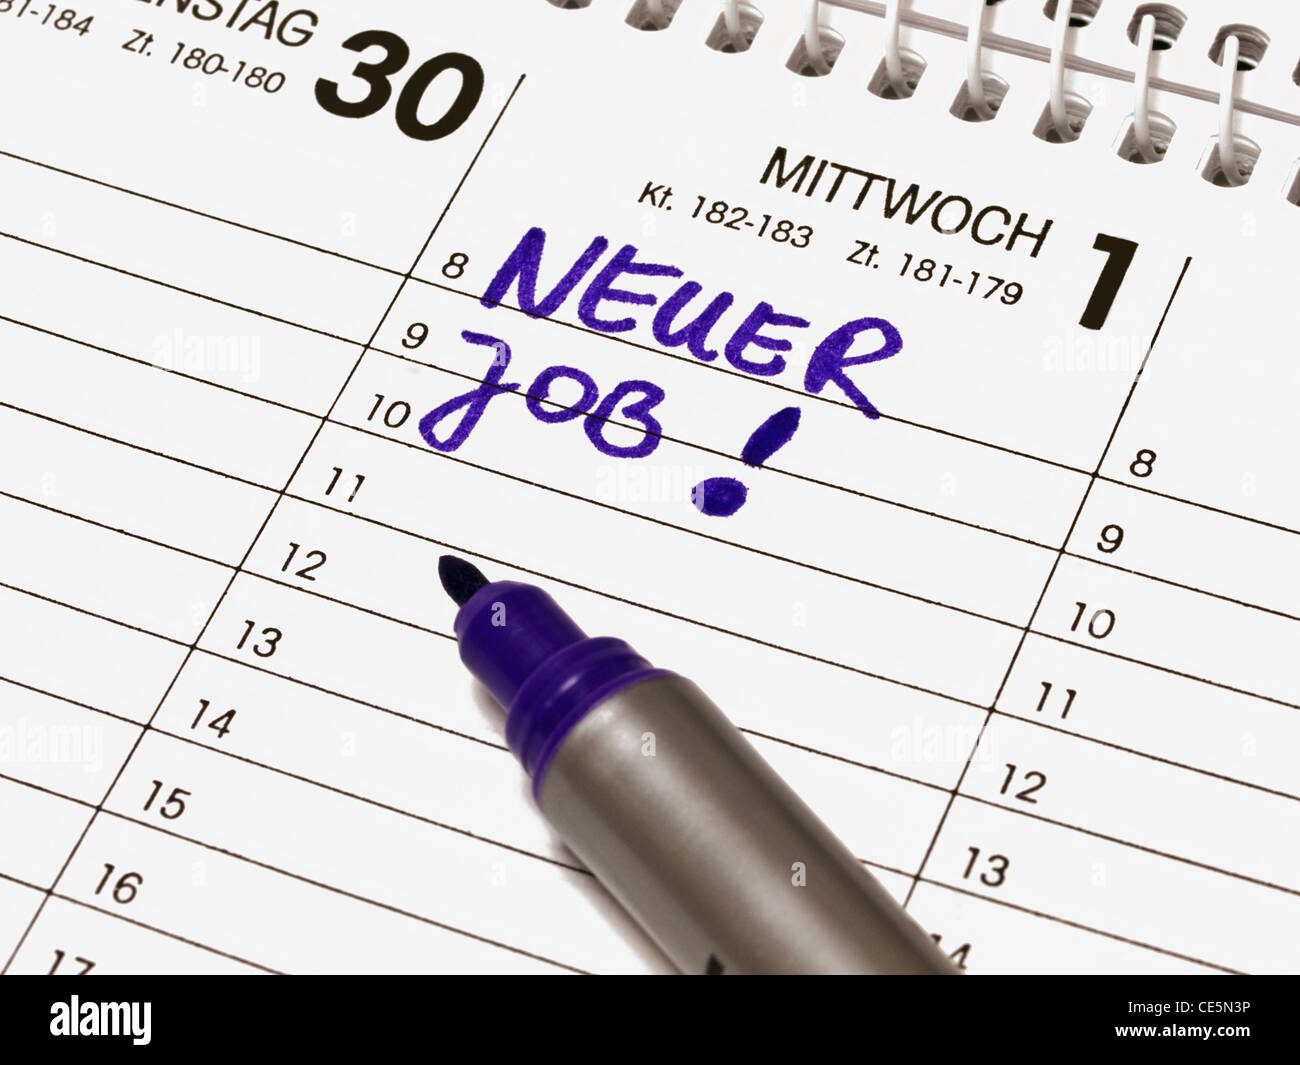 A calendar shows Wednesday the first day, of a month. The item New Job is in the calendar written with German words. - Stock Image